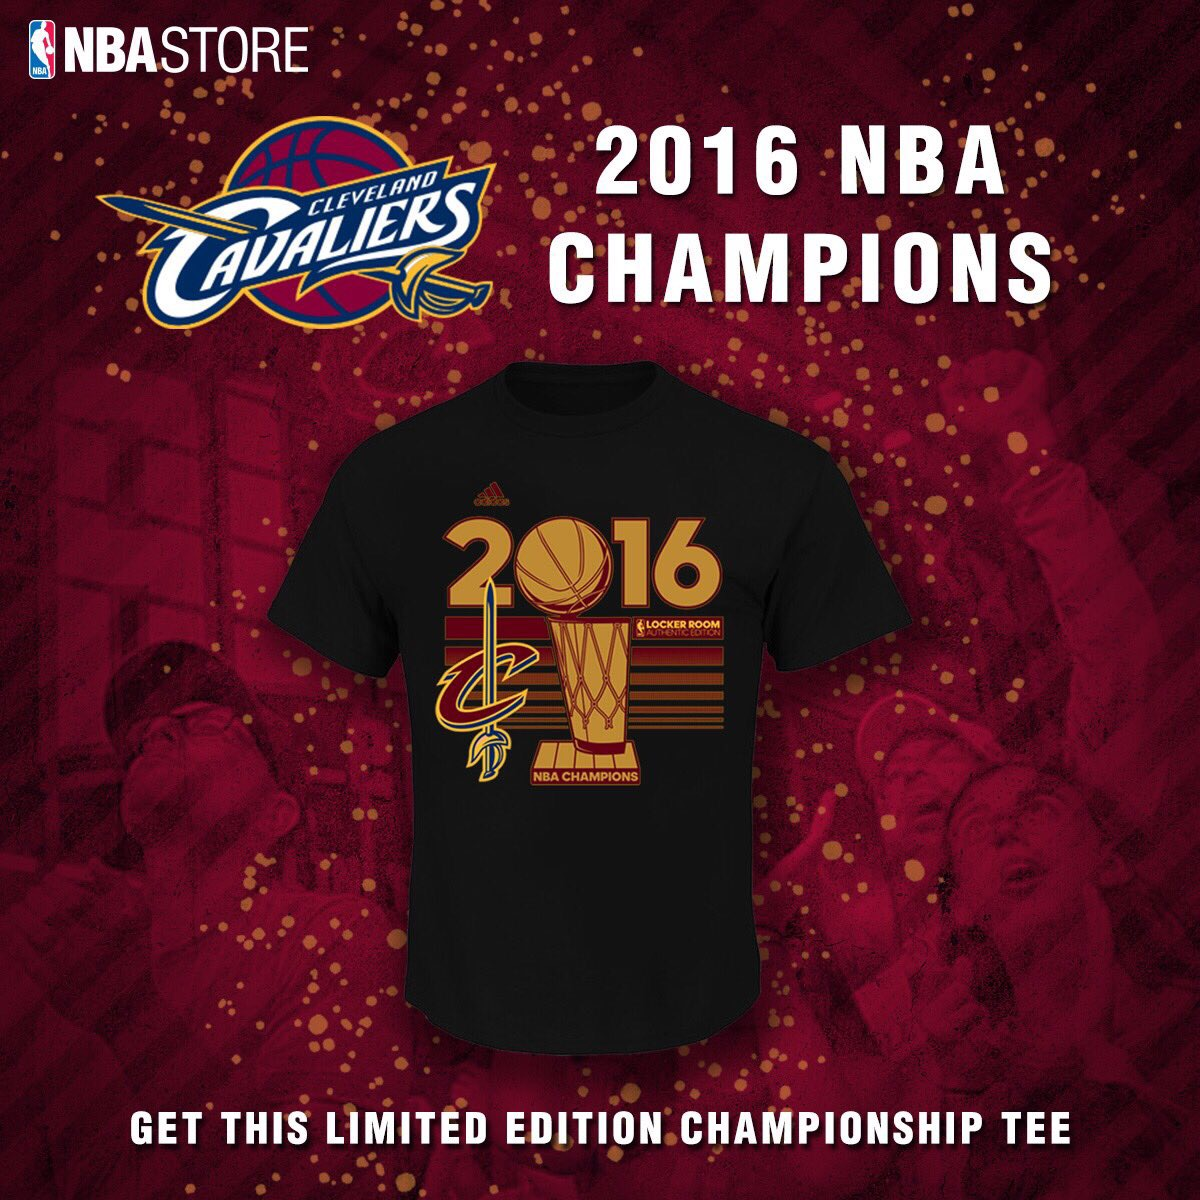 Cavs black t shirt jersey - Nba Store Ph Releases Cleveland Cavaliers Championship Shirts